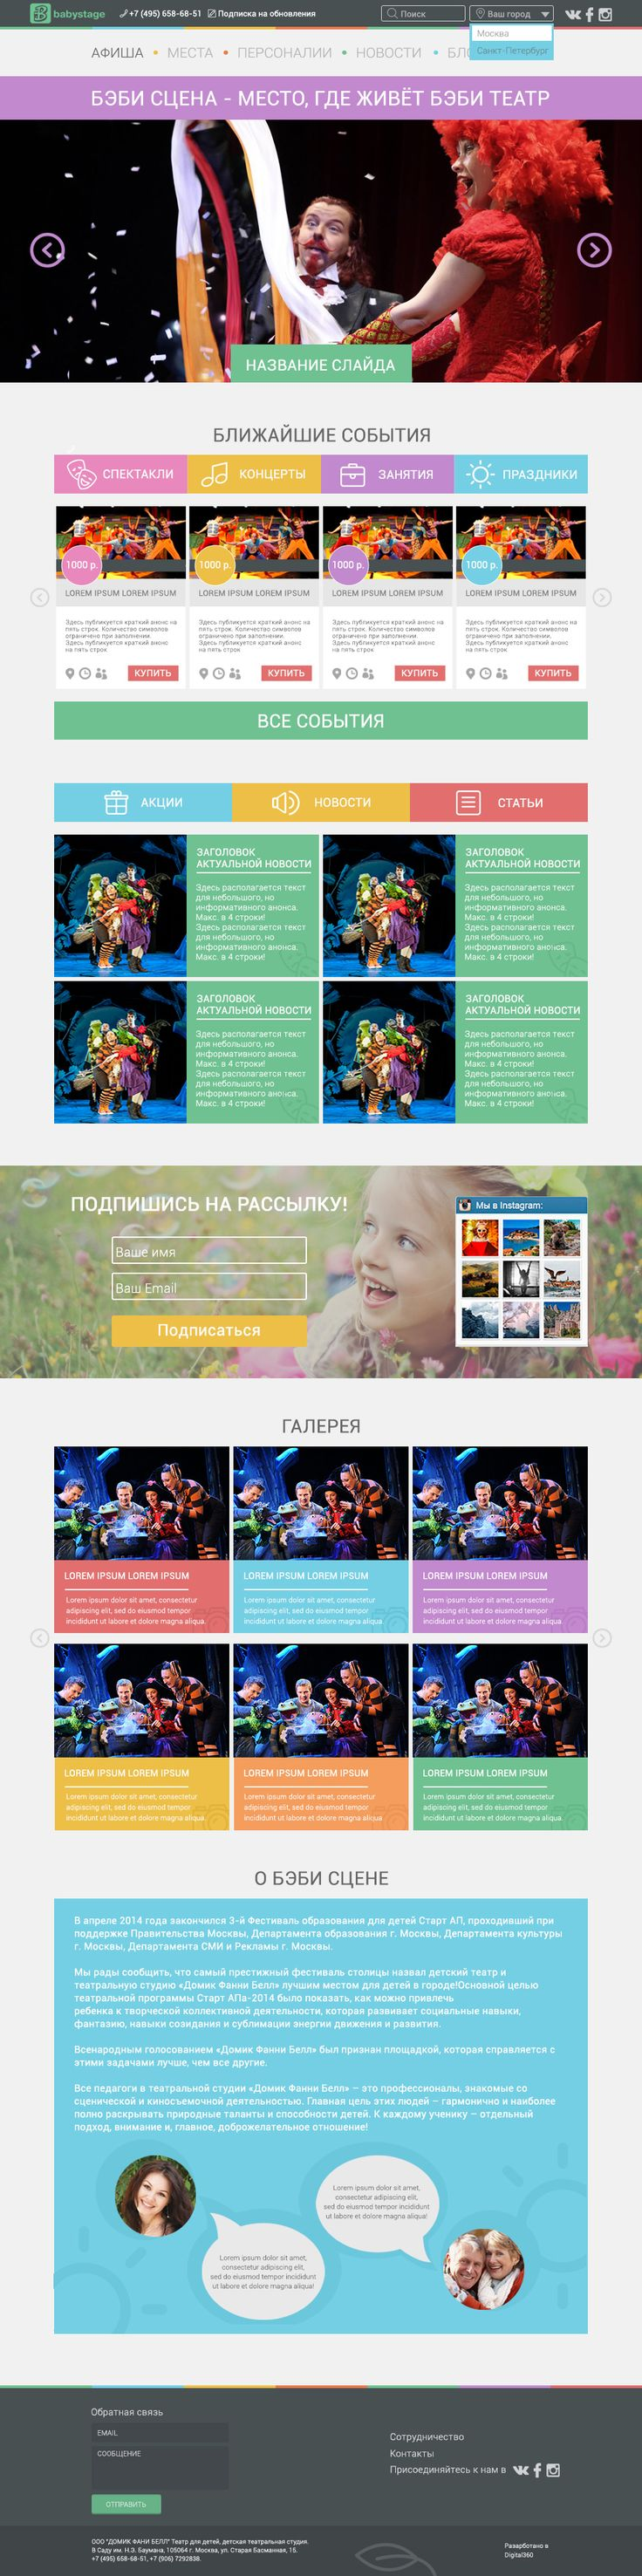 Babystage home page - http://artzoomi.com